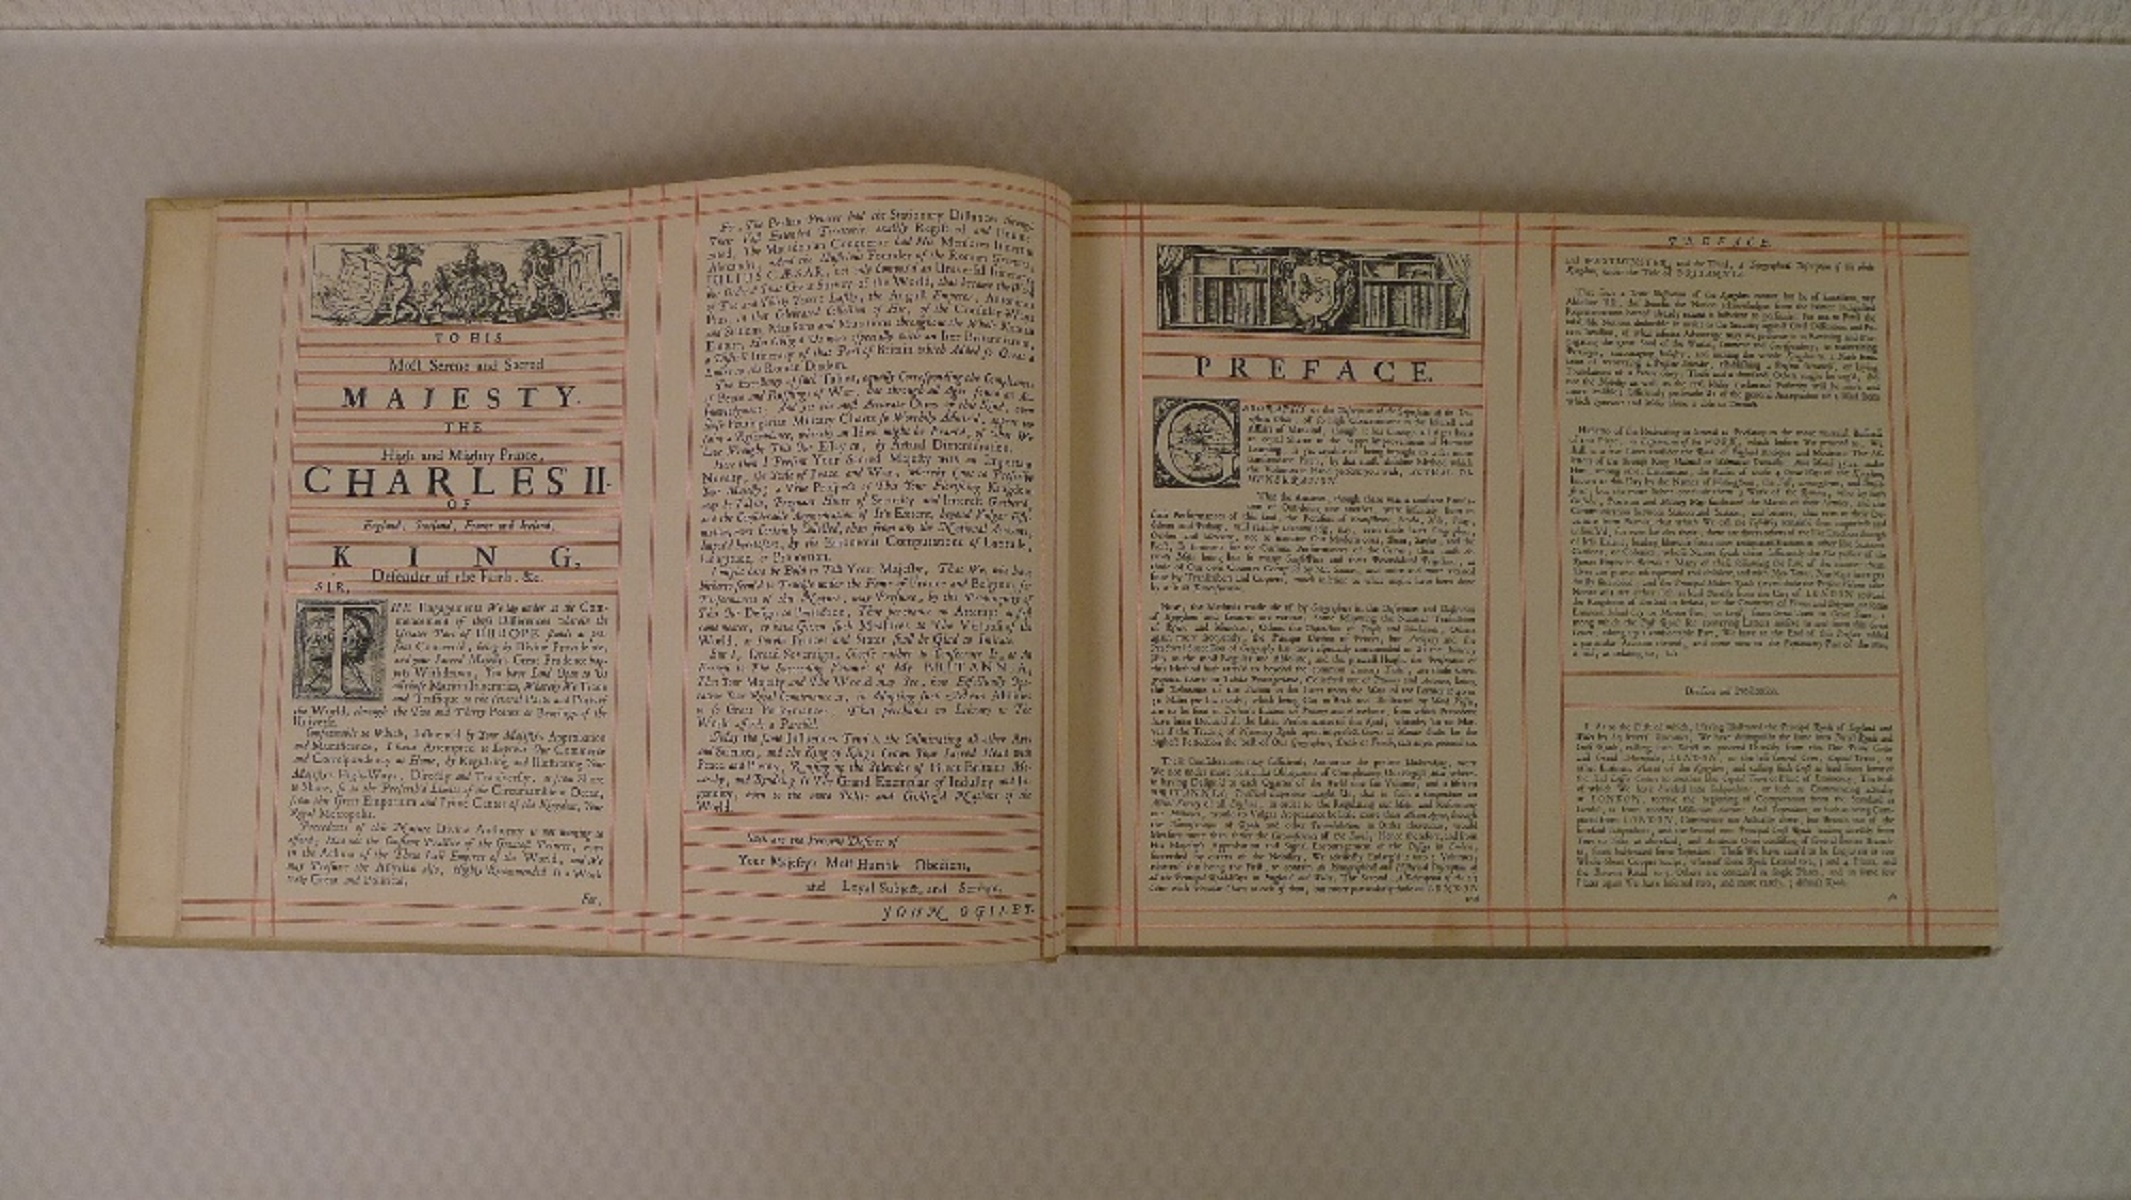 A facsimile reprint of Britannia: Volume The First or an Illustration of the Kingdom of England - Image 5 of 7